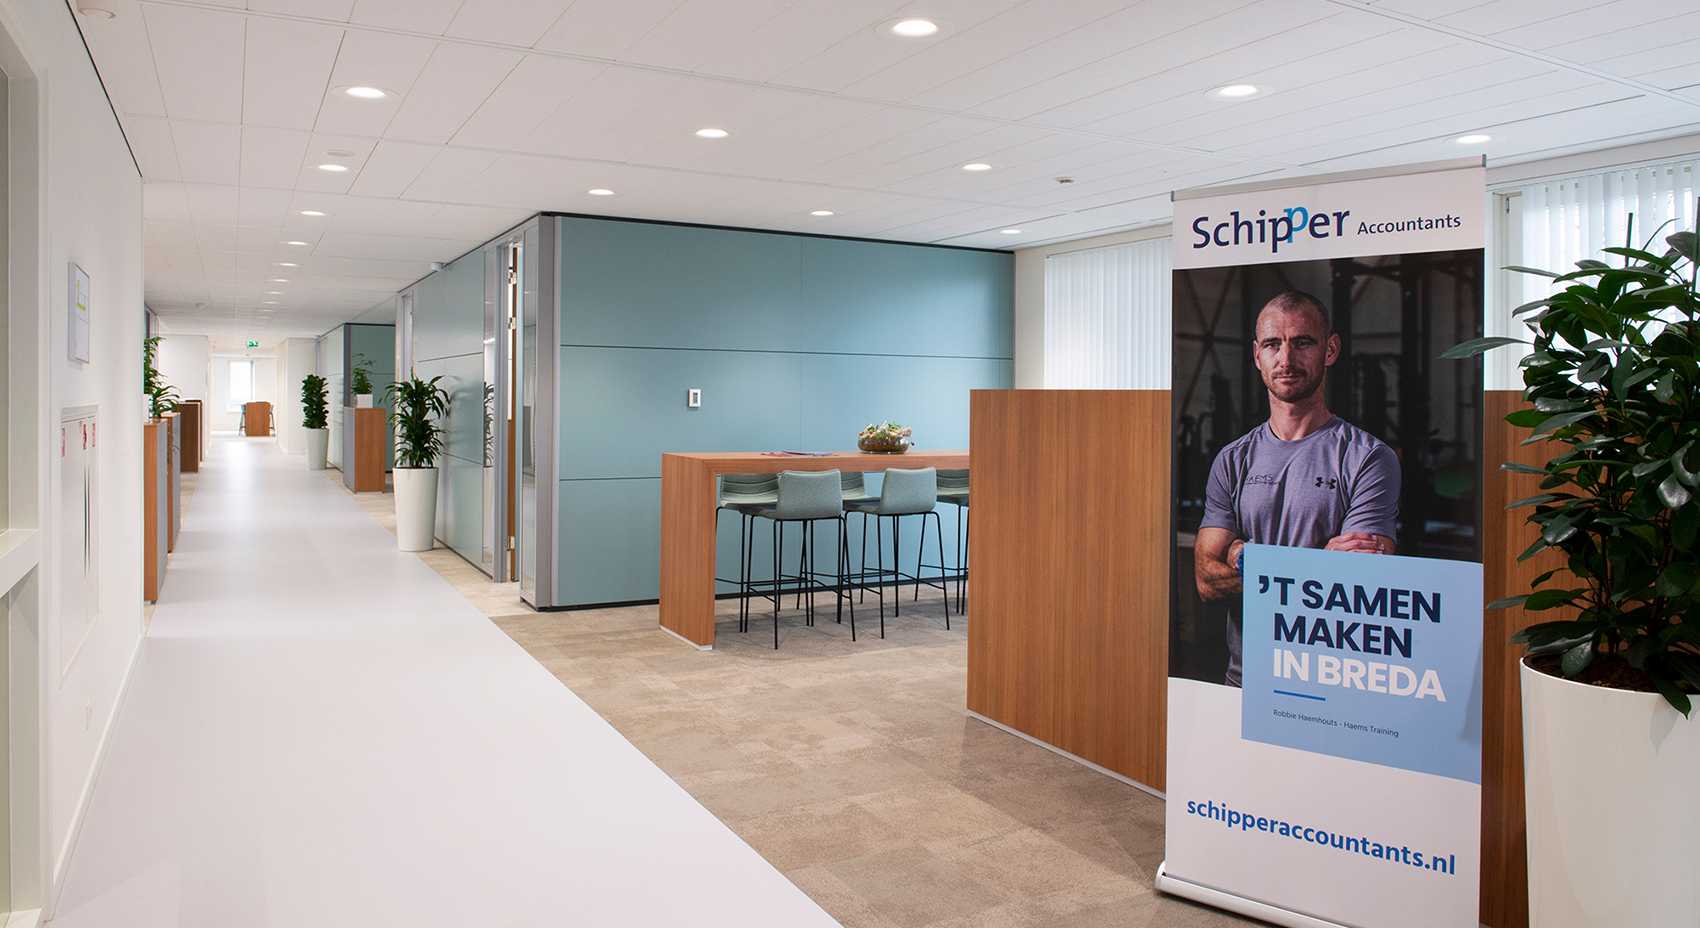 Schipper Accountants, Нидерланды